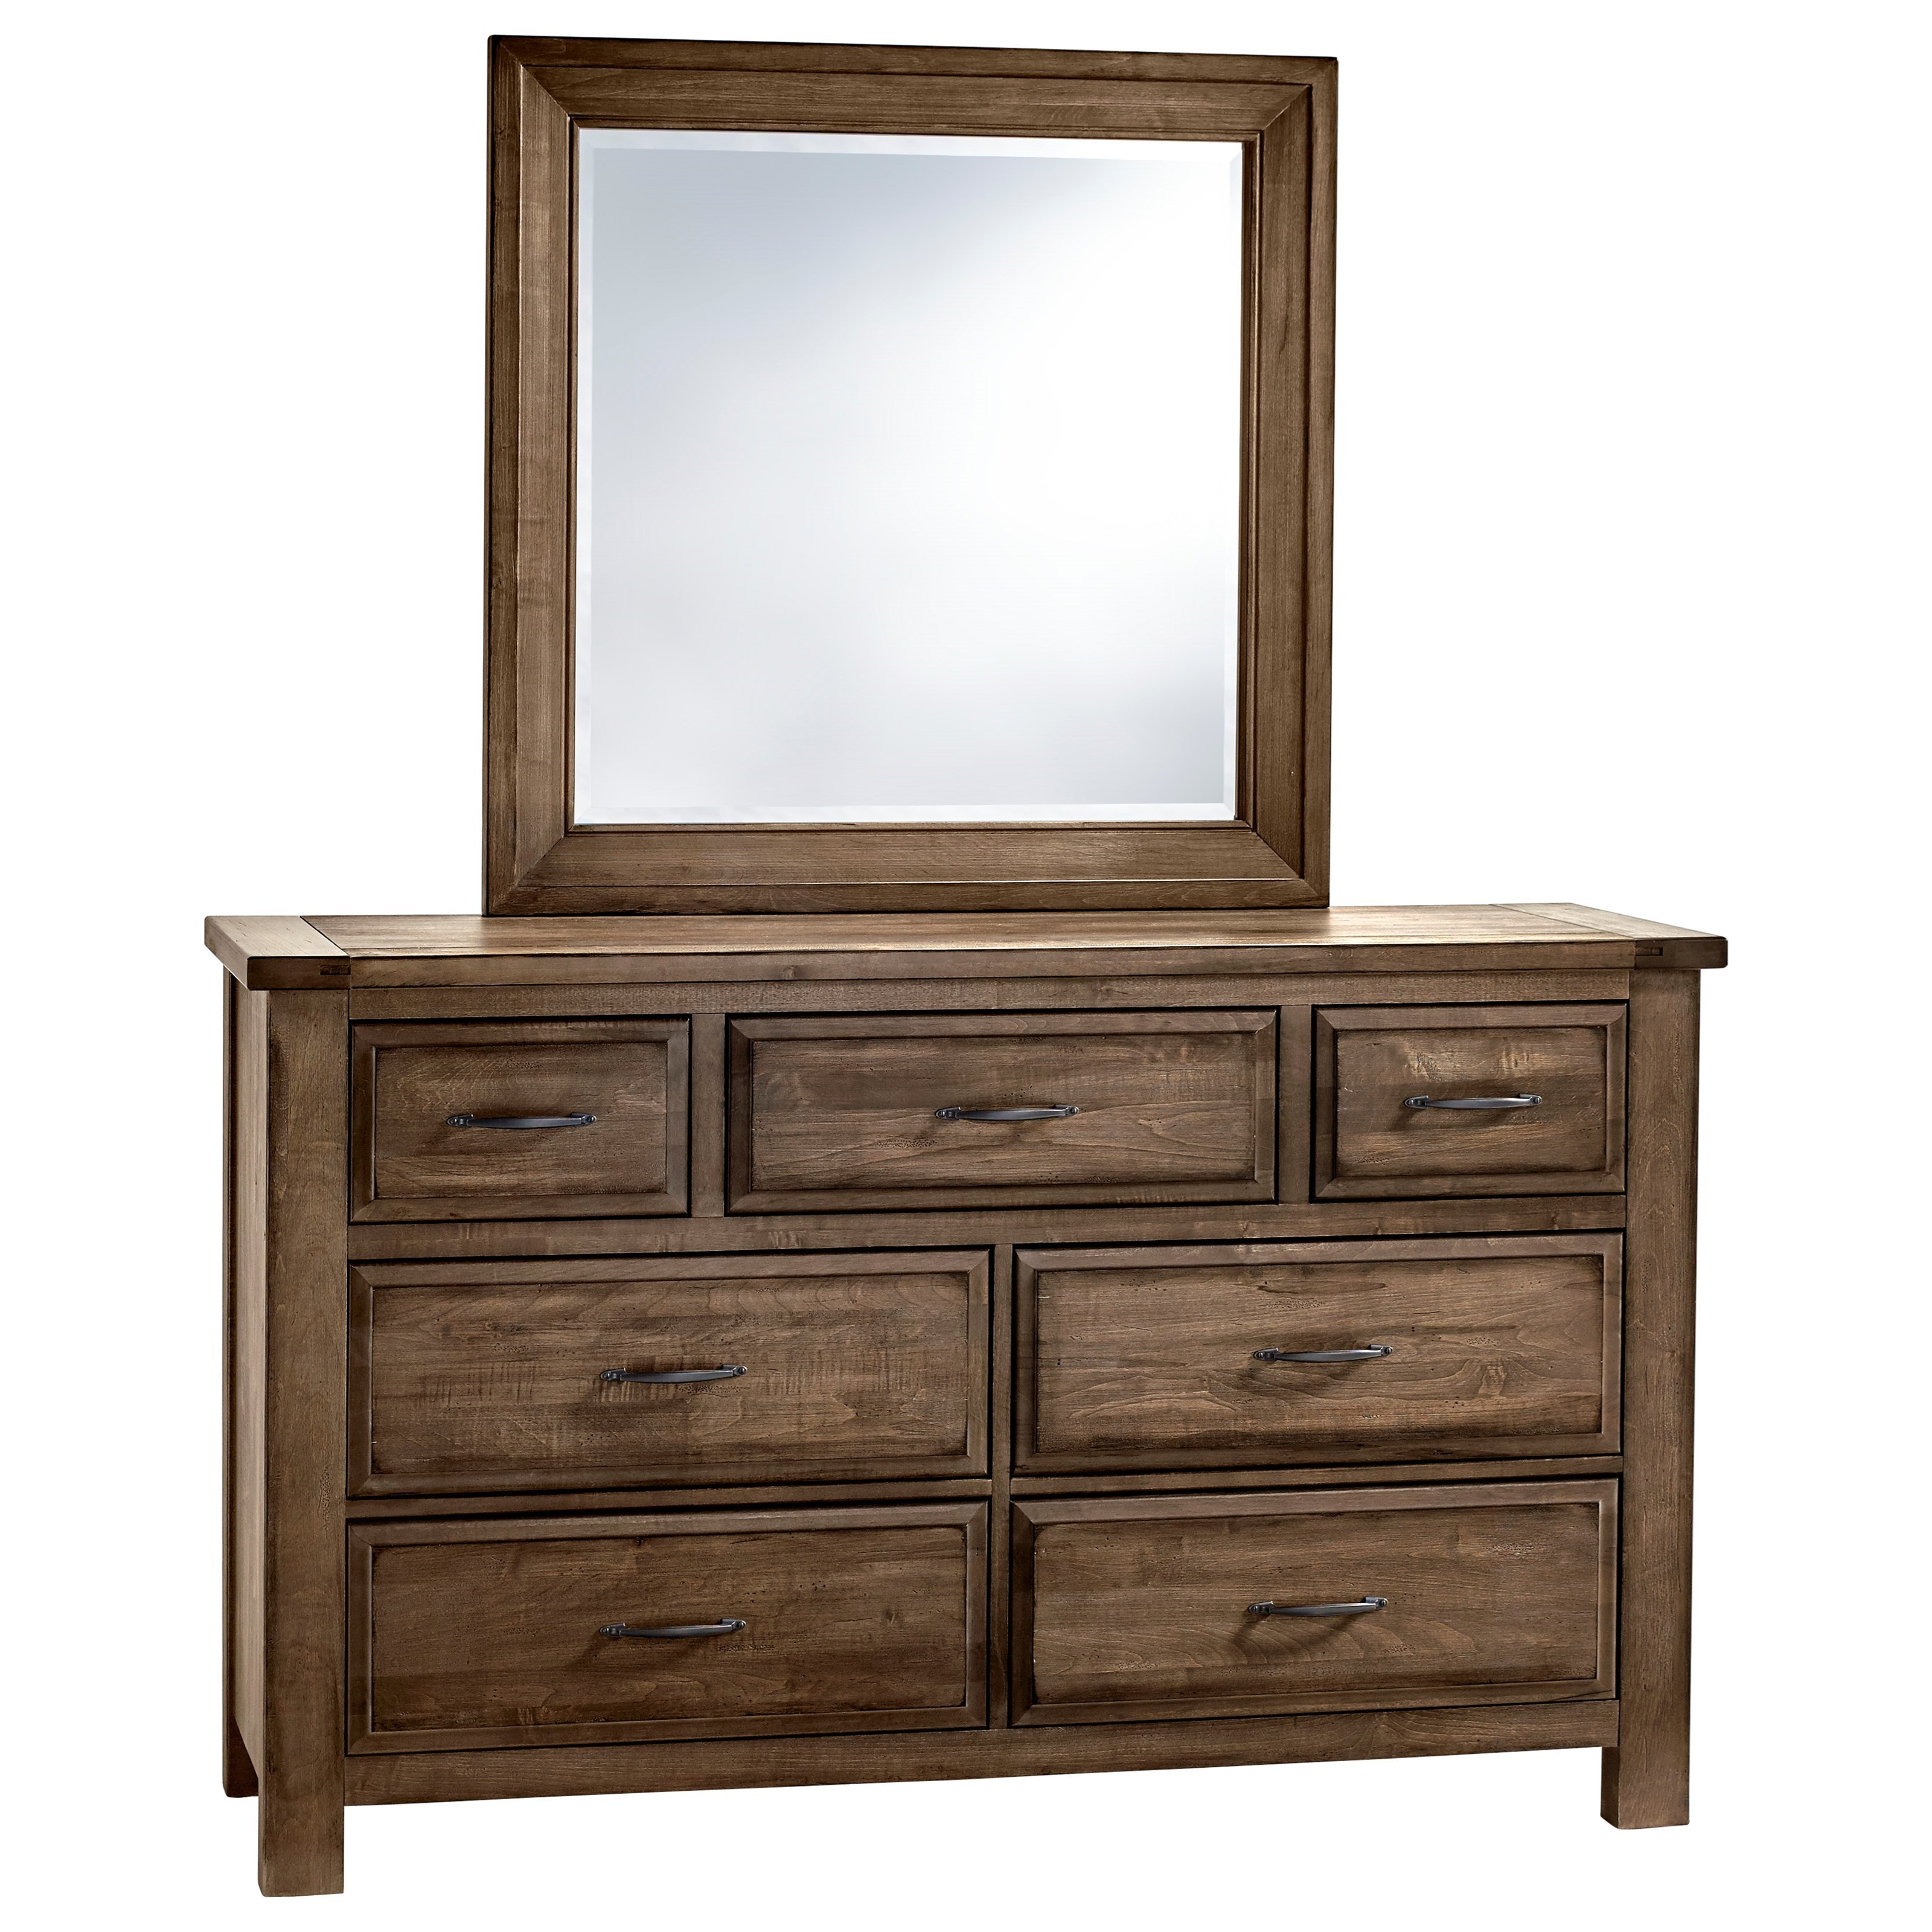 Artisan Post Maple Road Solid Wood Dresser Mirror Belfort Furniture Dresser Mirror Sets